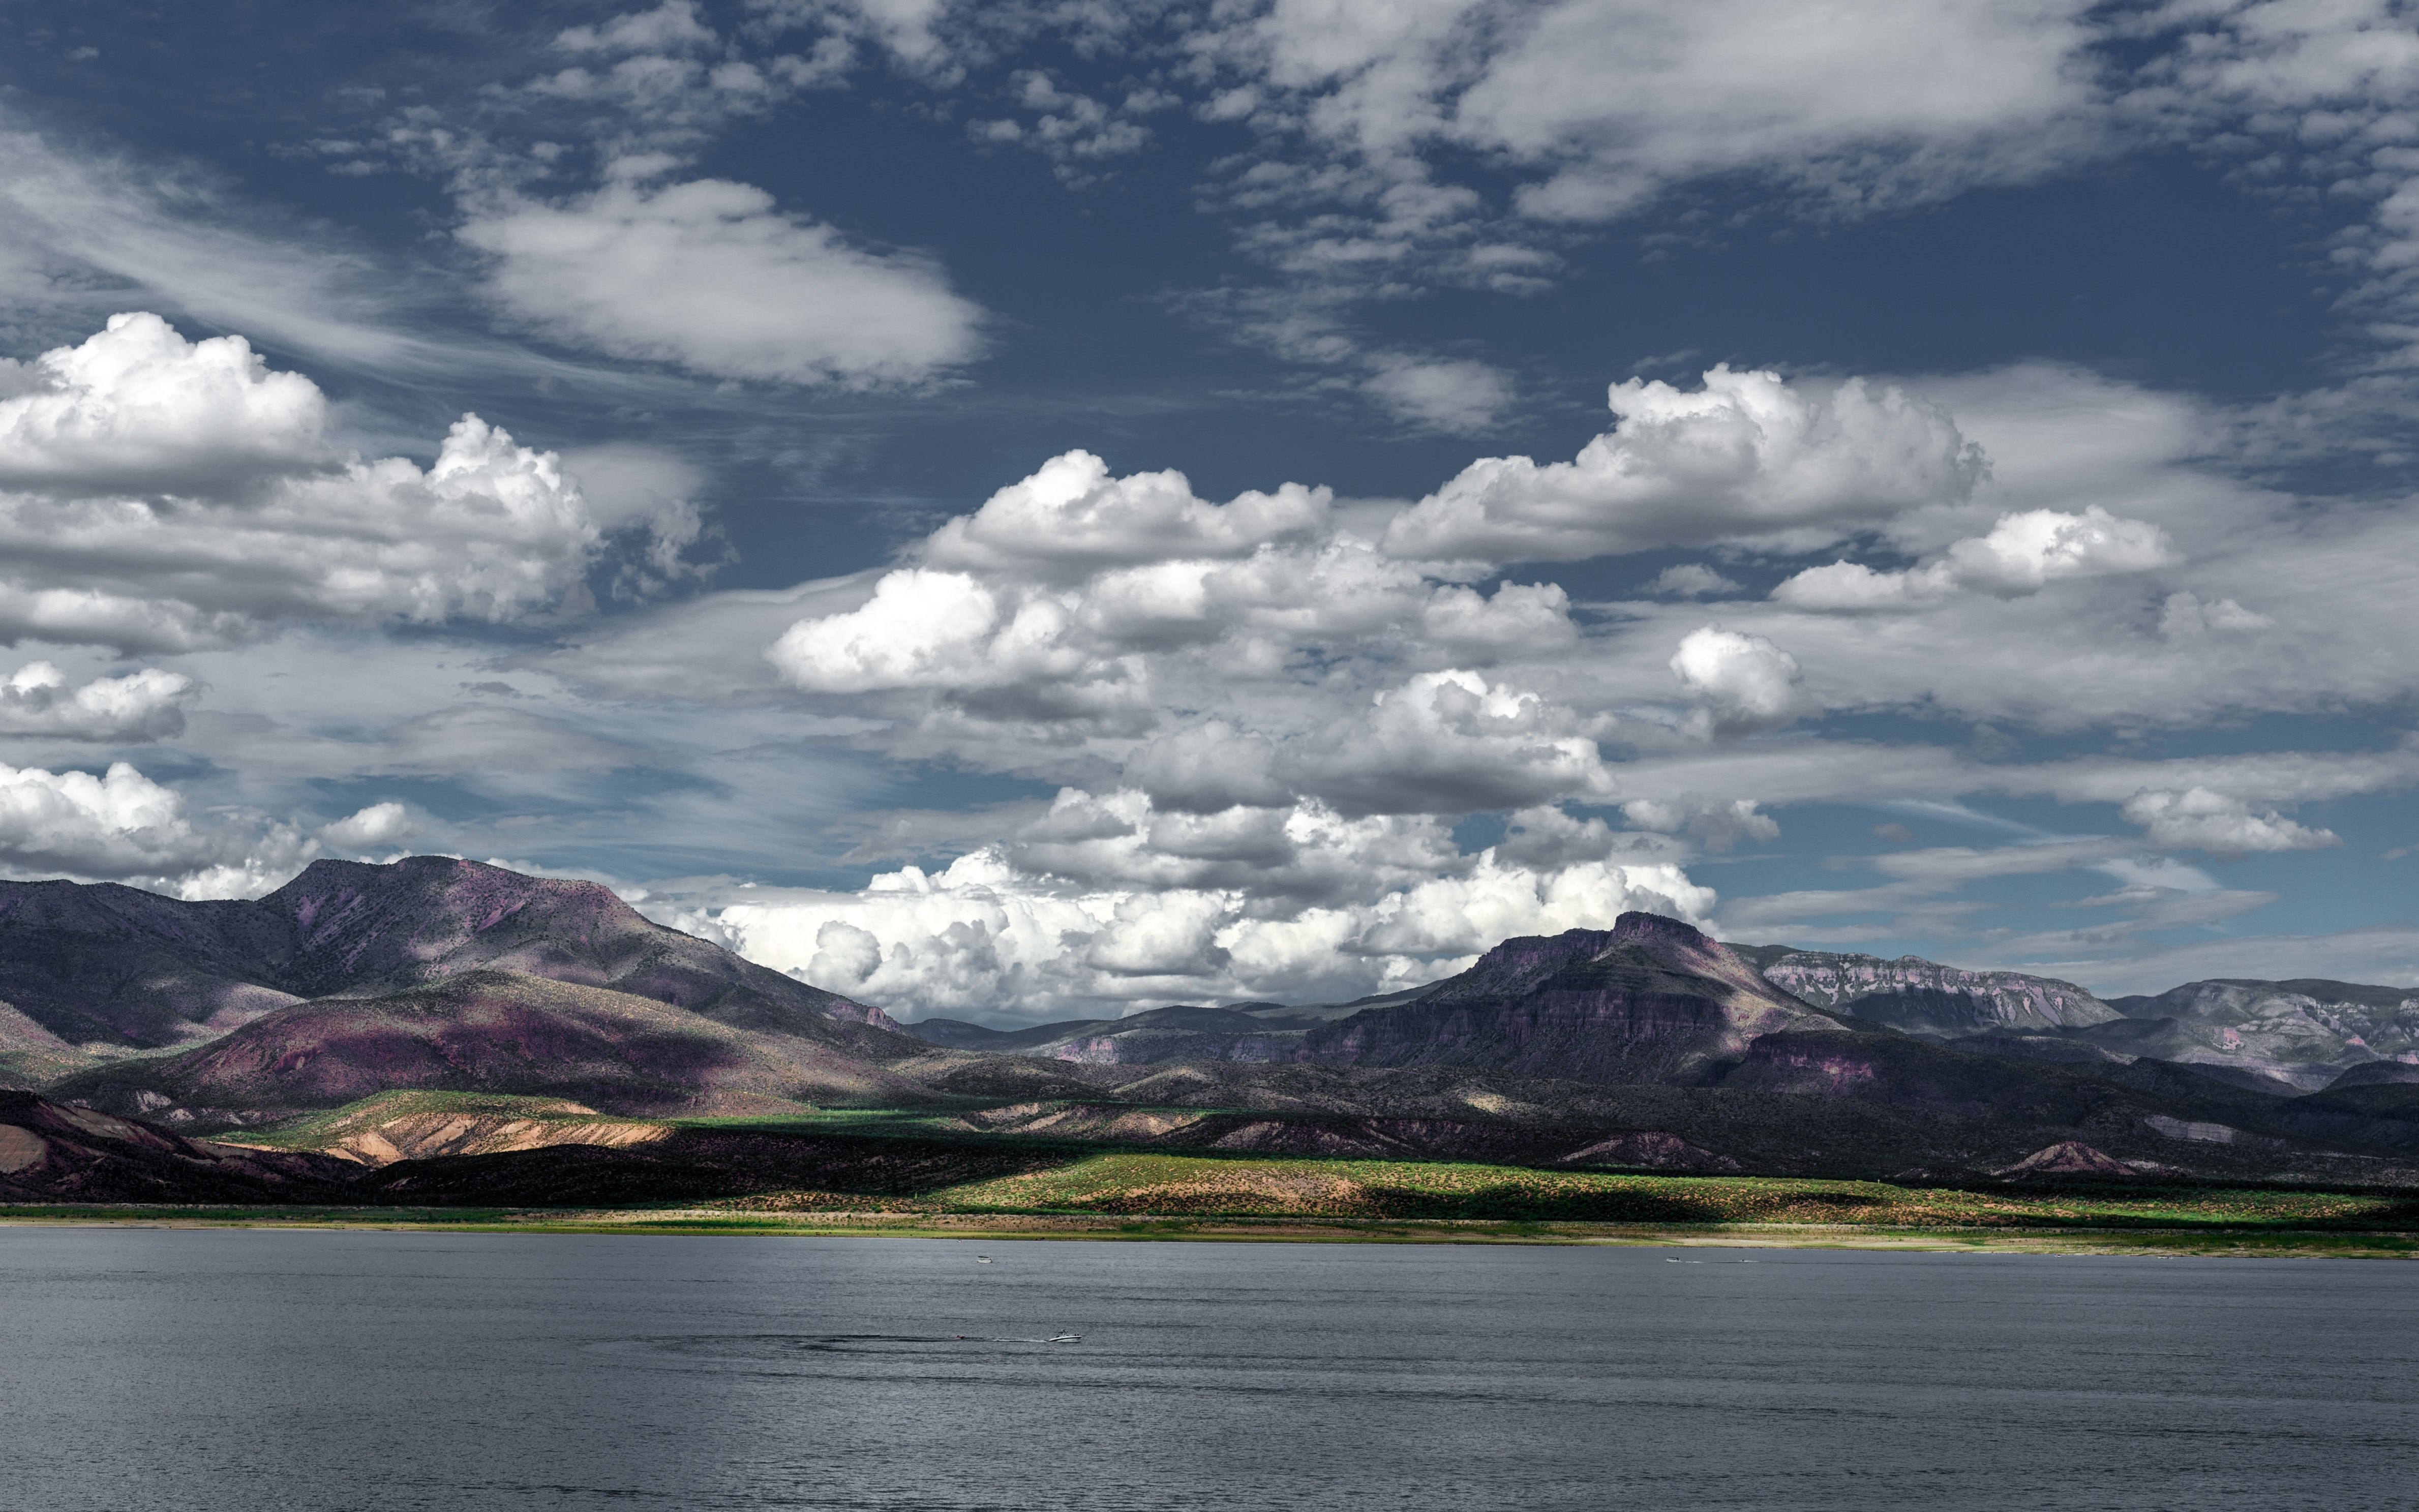 Beautiful mountain view with white fluffy clouds over a lake Roosevelt